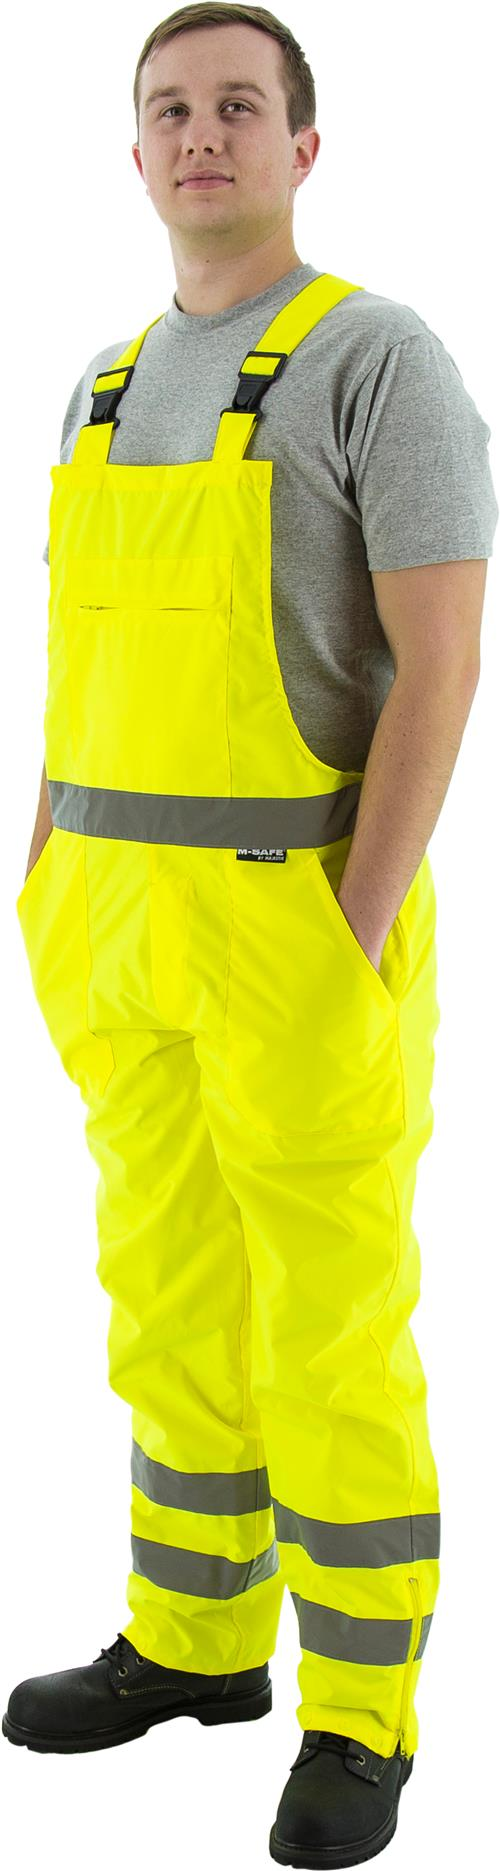 Majestic 75-2353 High Visibility Waterproof Rain Bib, ANSI/ISEA 107-2004 Class E Compliant